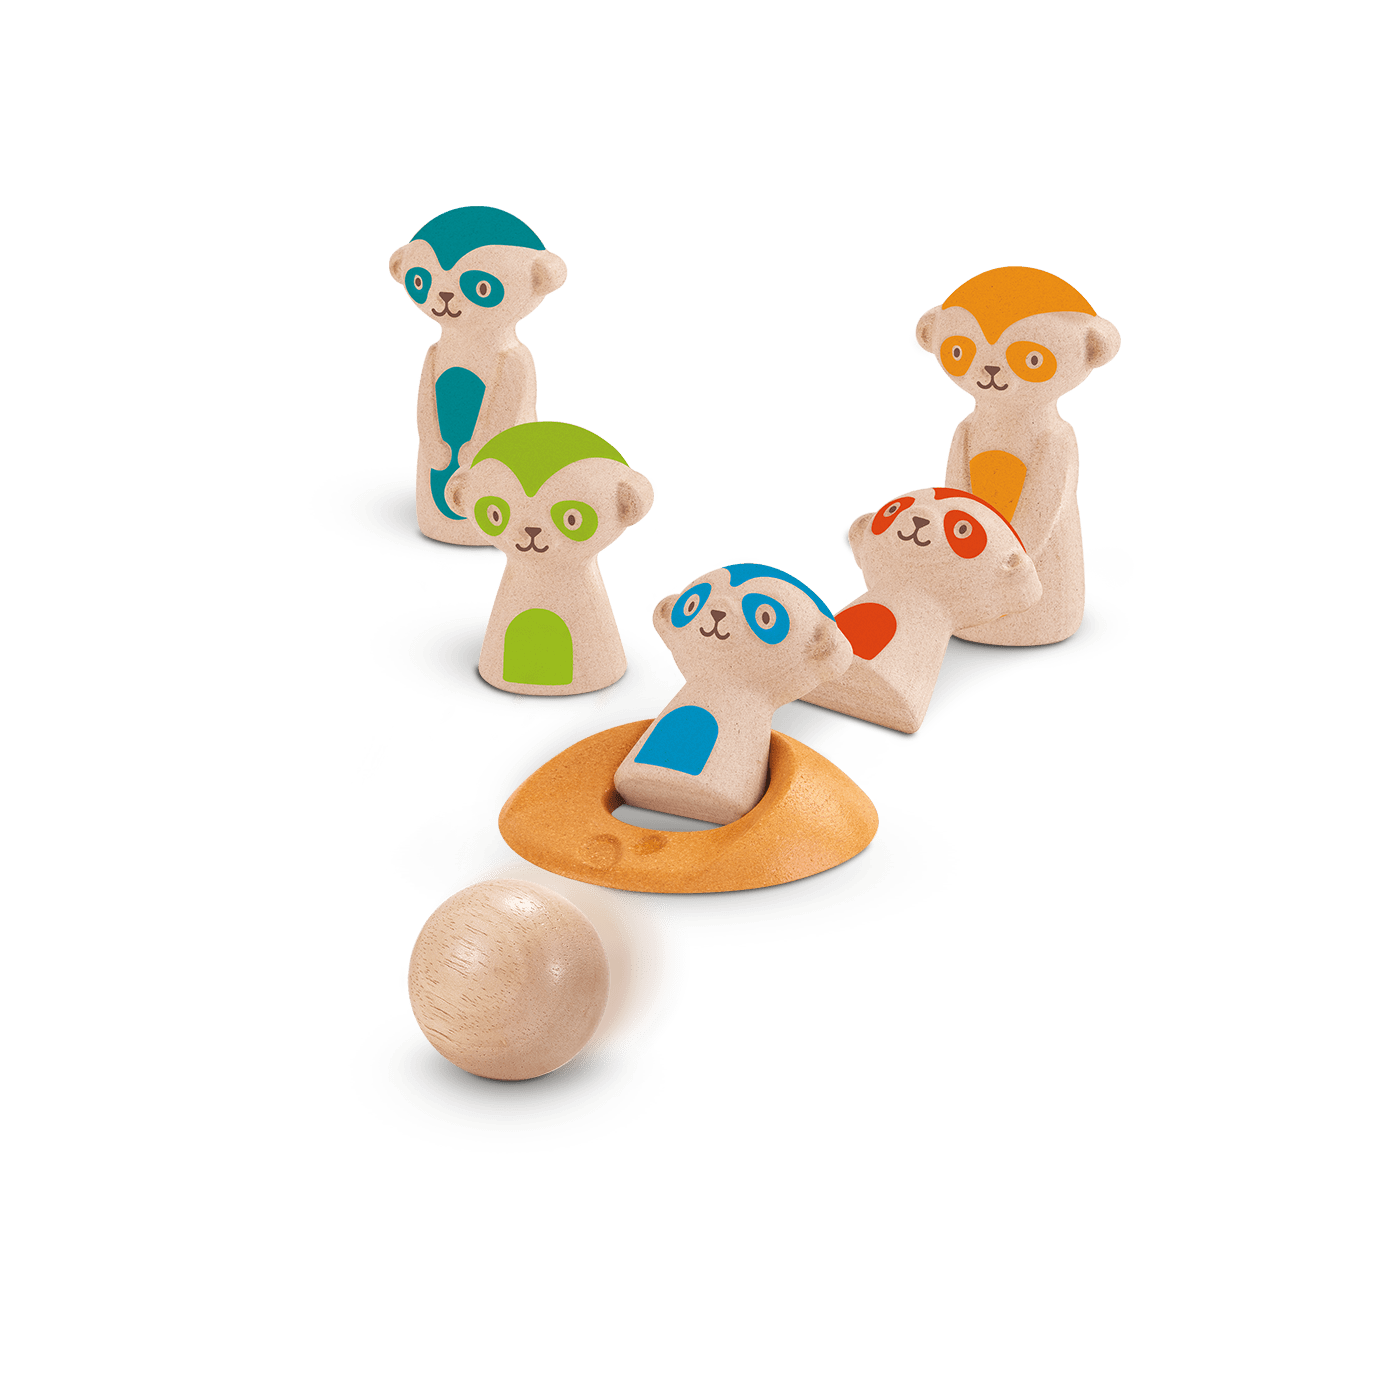 5199_PlanToys_MEERKAT_BOWLING_Active_Play_Concentration_Gross_Motor_Coordination_Social_Fine_Motor_3yrs_Wooden_toys_Education_toys_Safety_Toys_Non-toxic_0.png